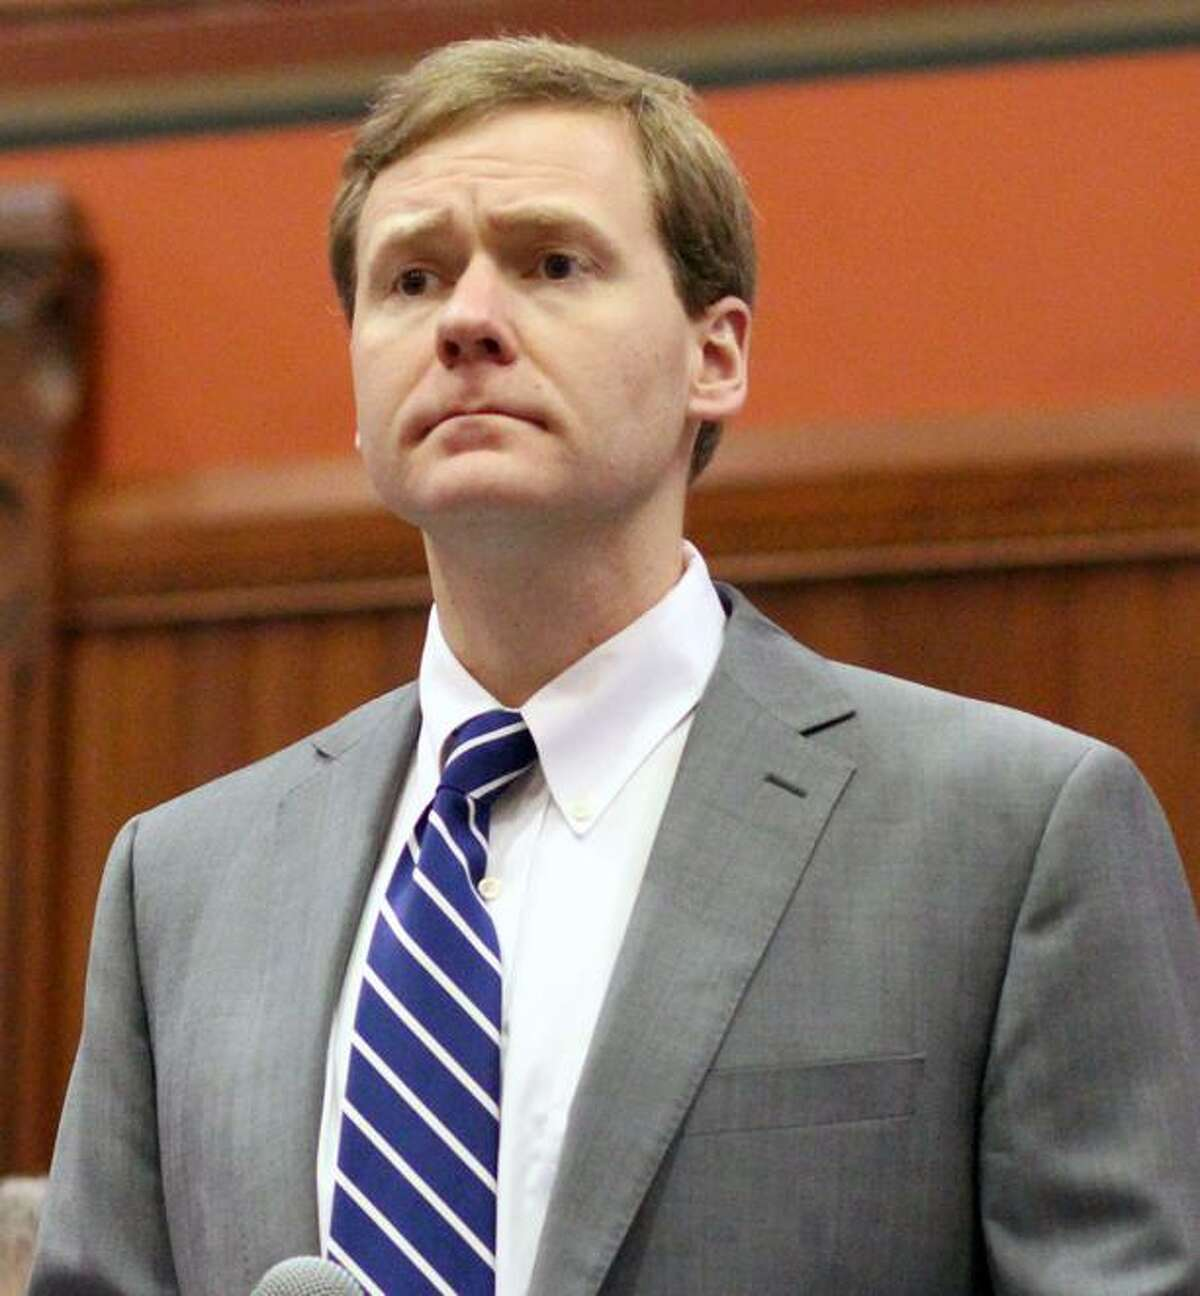 House Majority Leader Matt Ritter, D-Hartford, said Monday that he expects lawsuits to result from any casino expansion that might be approved by the General Assembly.